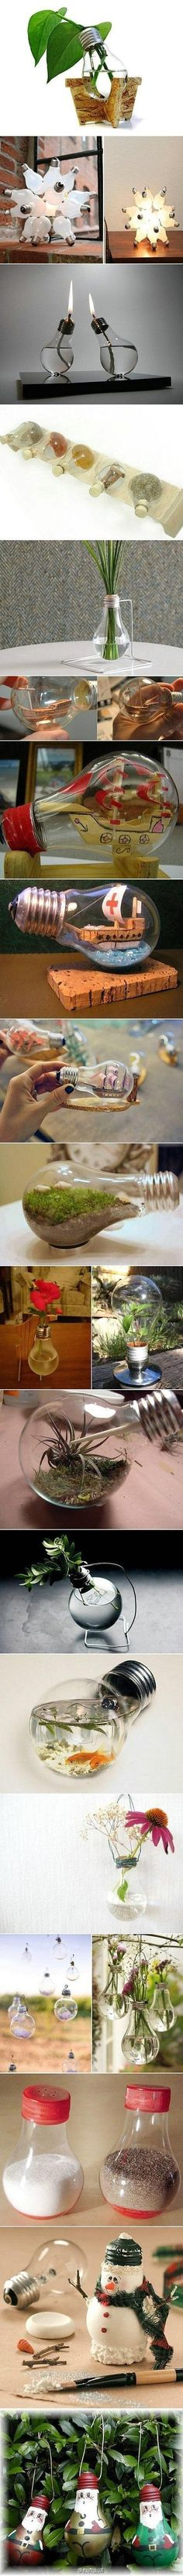 Wonderful, creative light bulb ideas <3.